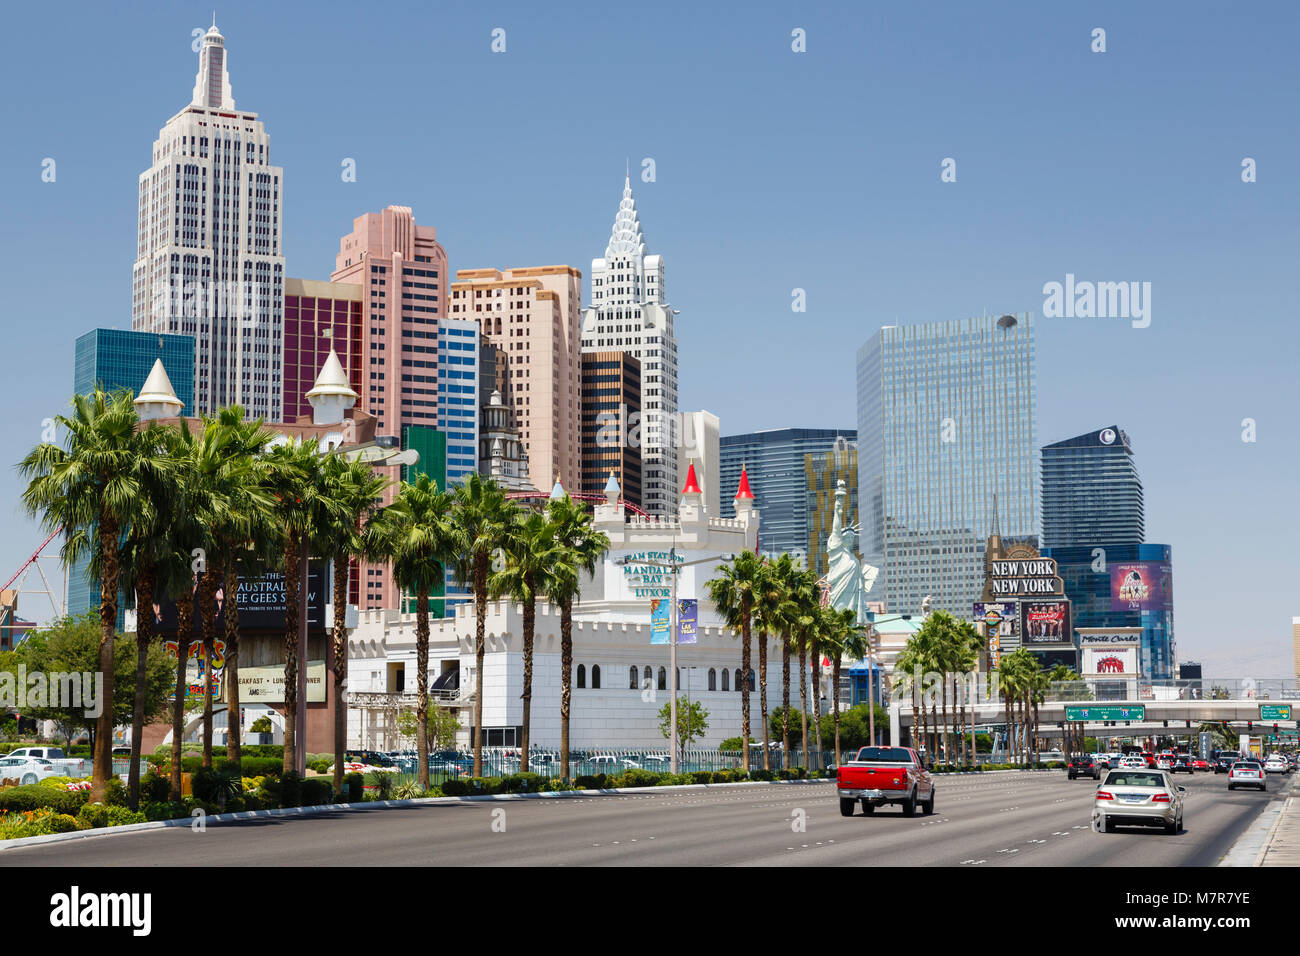 Las Vegas, USA - May 19, 2012. Excalibur Hotel and New York New York Hotel and Casino on Las Vegas Boulevard. Stock Photo